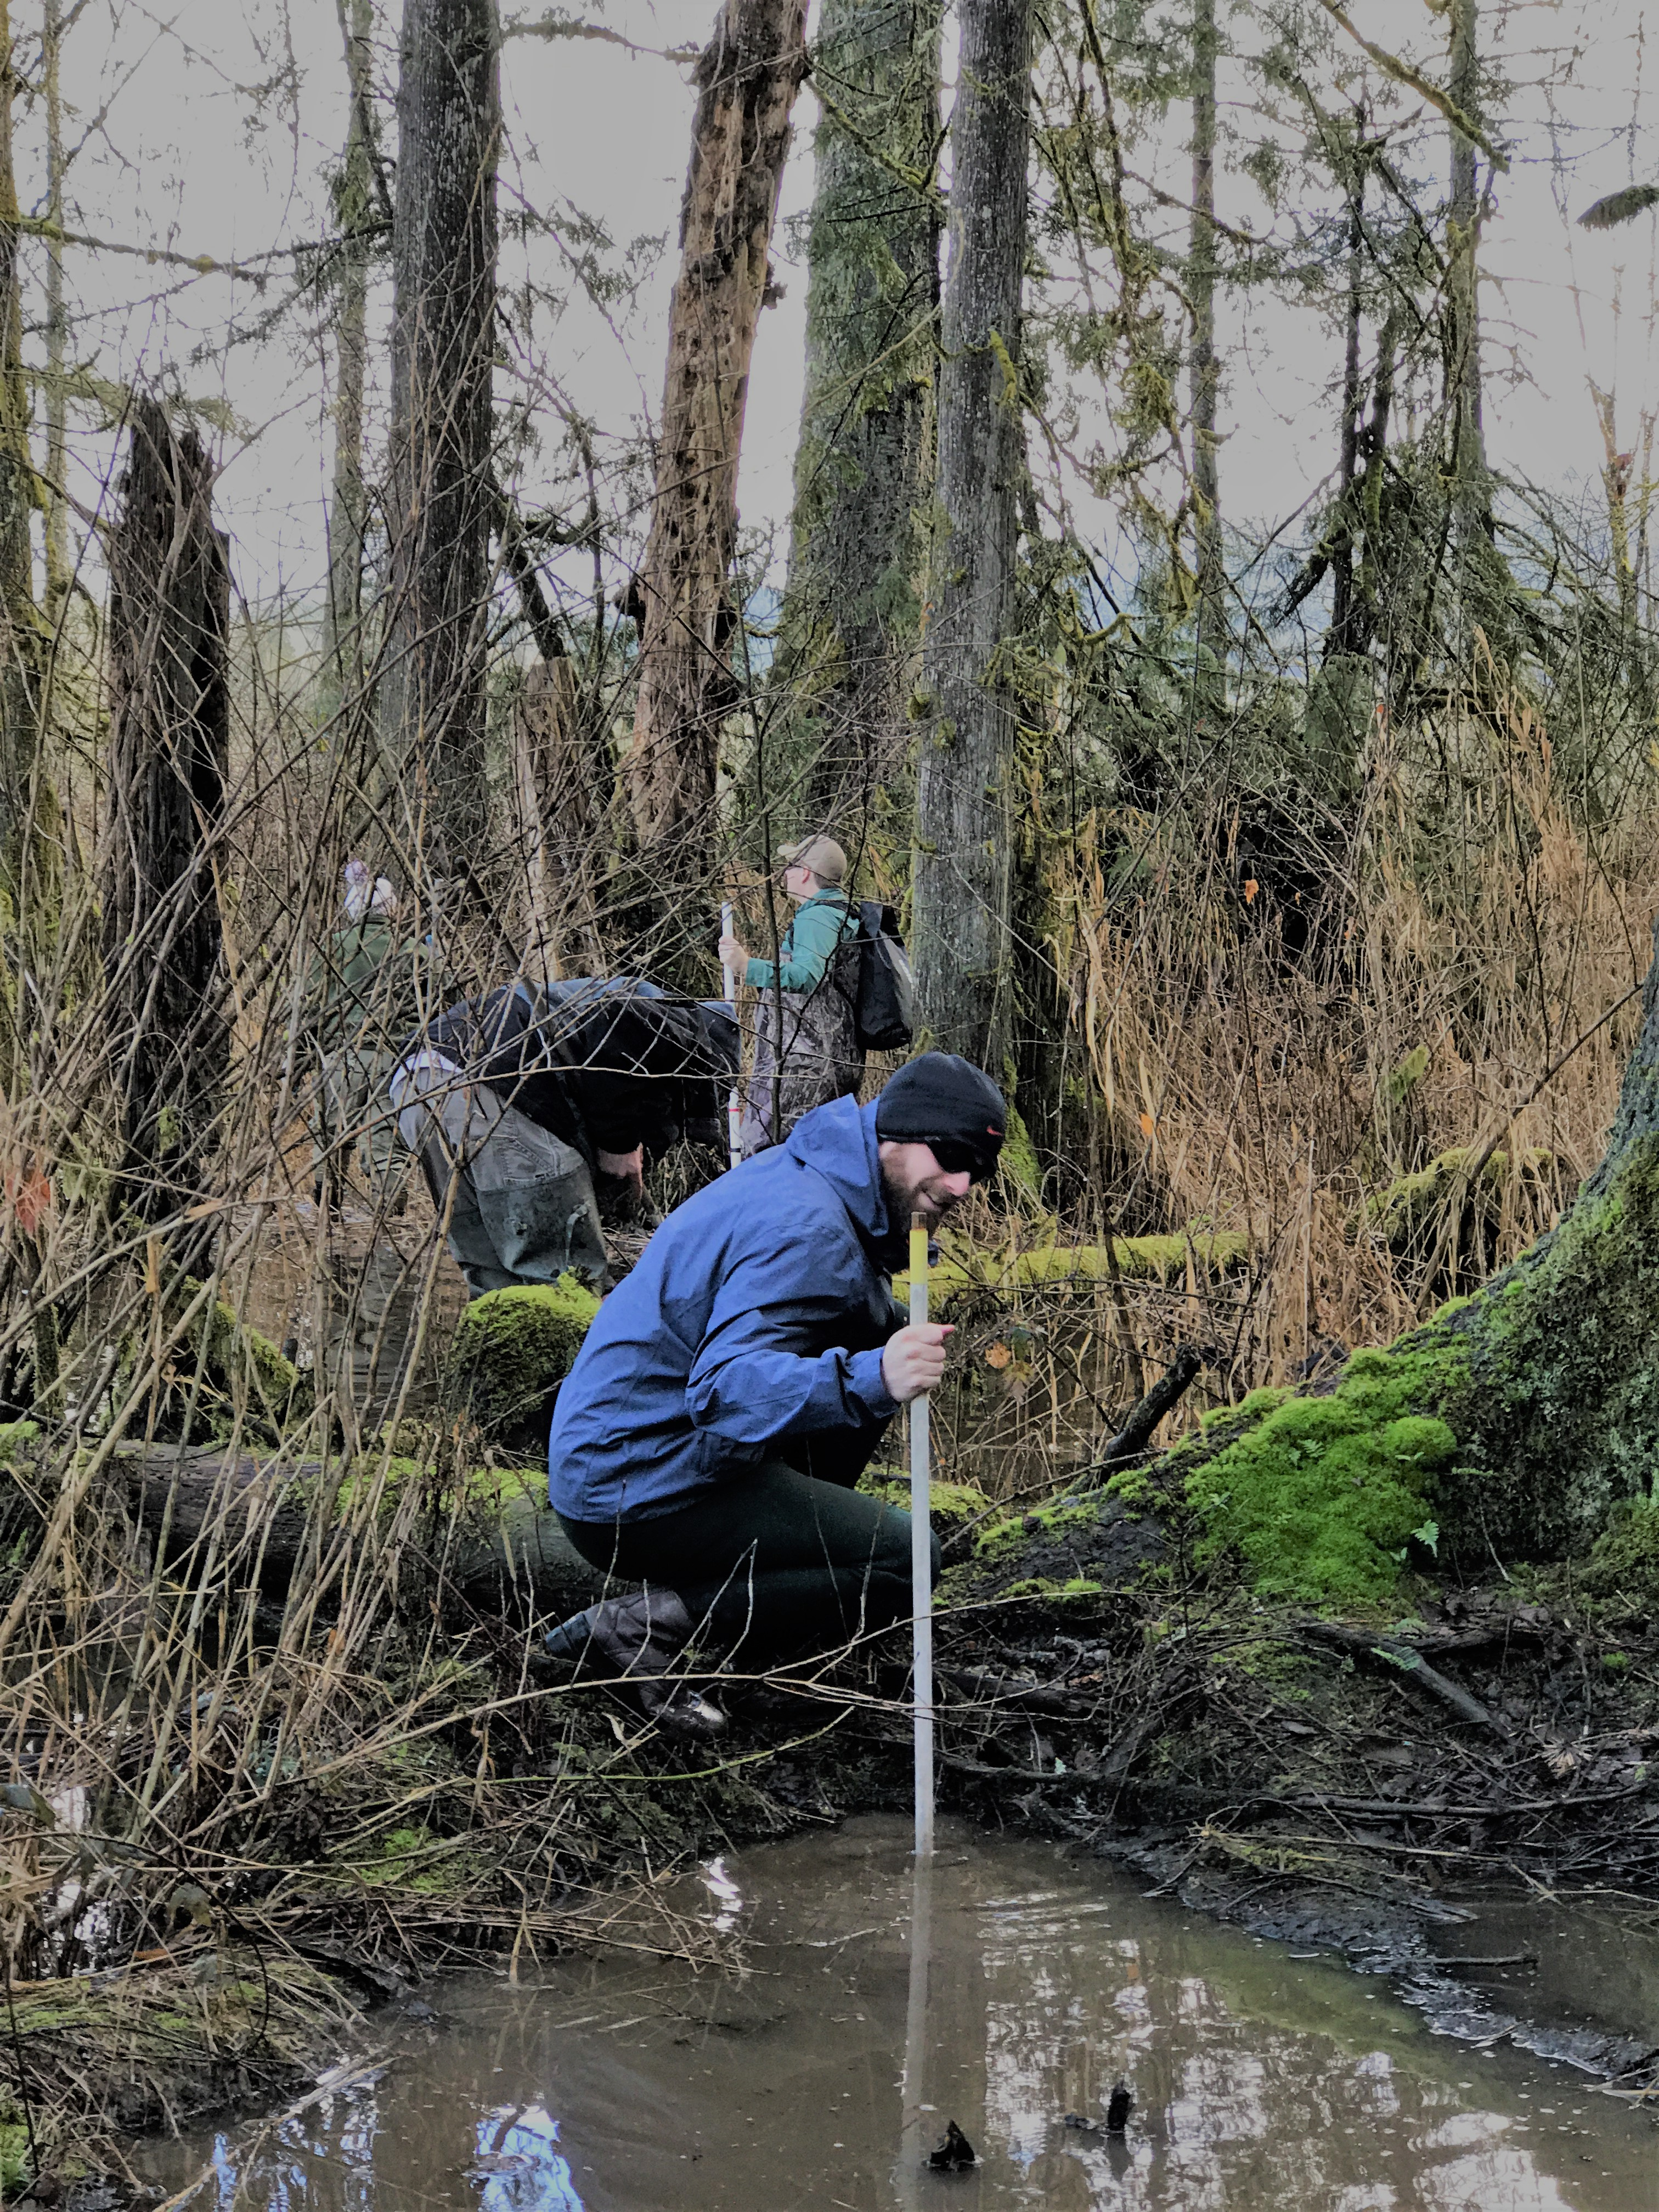 A volunteer measures water quality during amphibian monitoring project at Big Lake Wetlands Conservation Area, March 2018. Photograph credit: Skagit Land Trust staff.